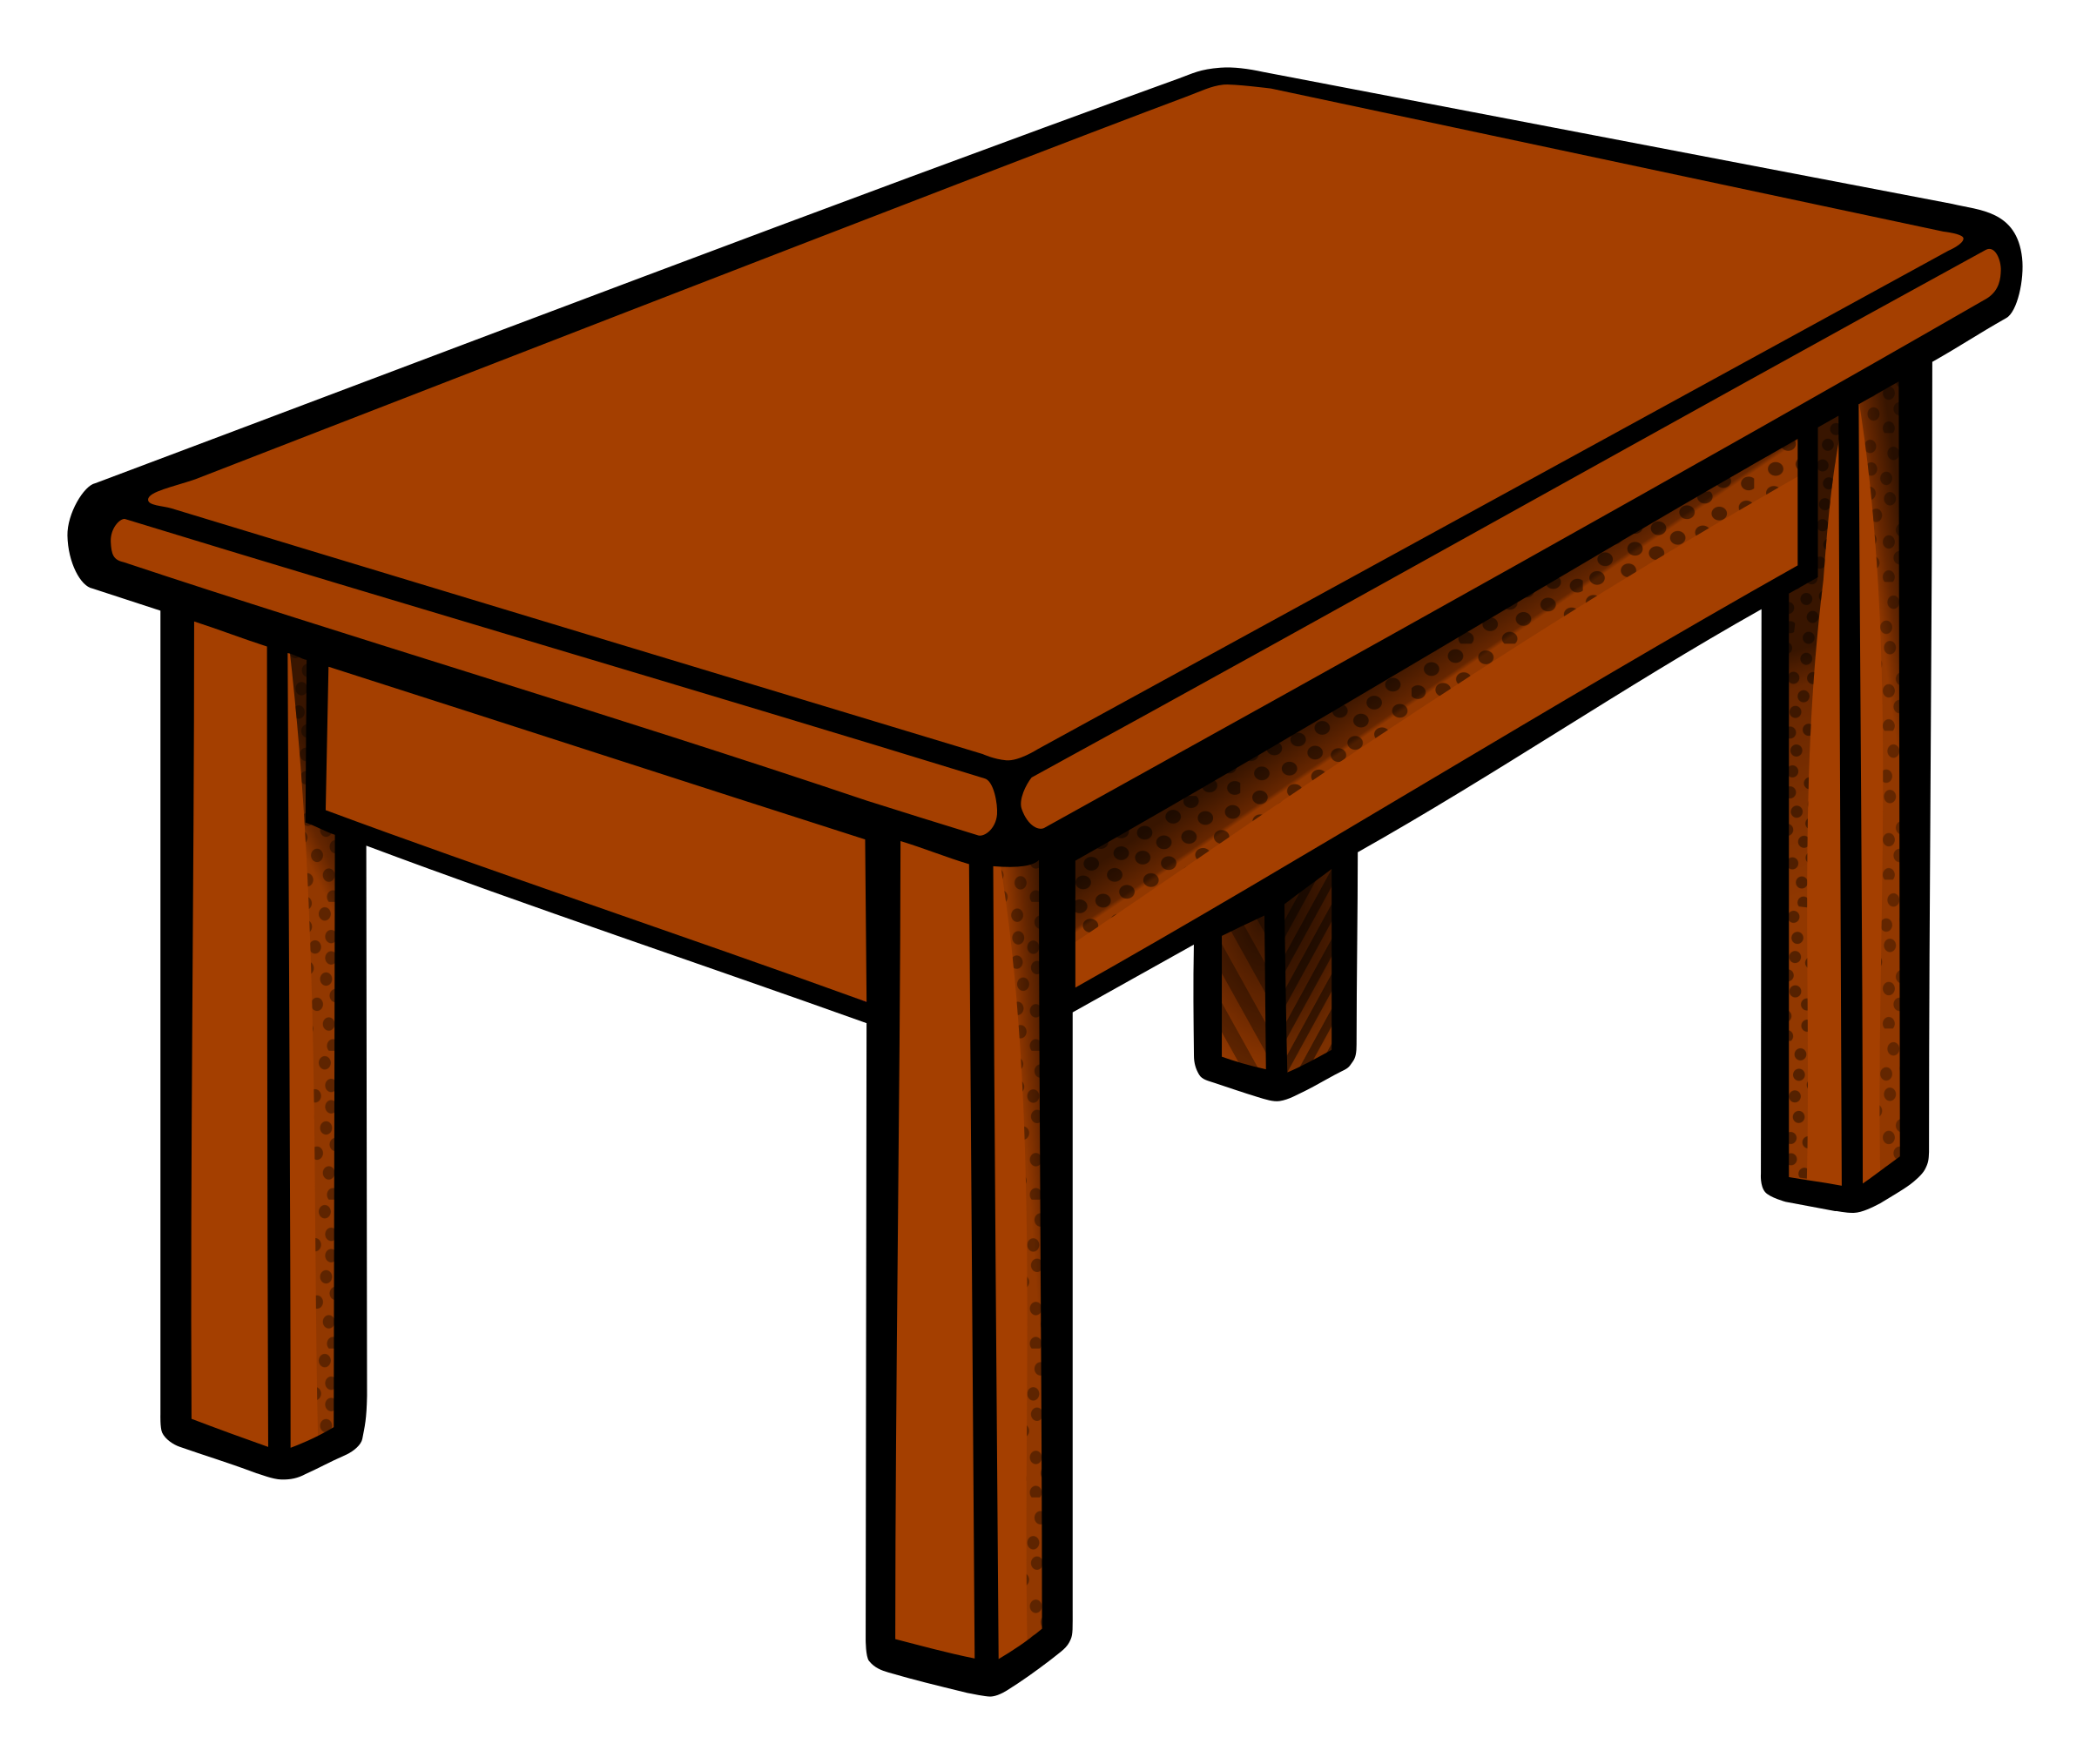 Tables clipart Clipground : table clipart 2 from clipground.com size 2400 x 2026 png 237kB